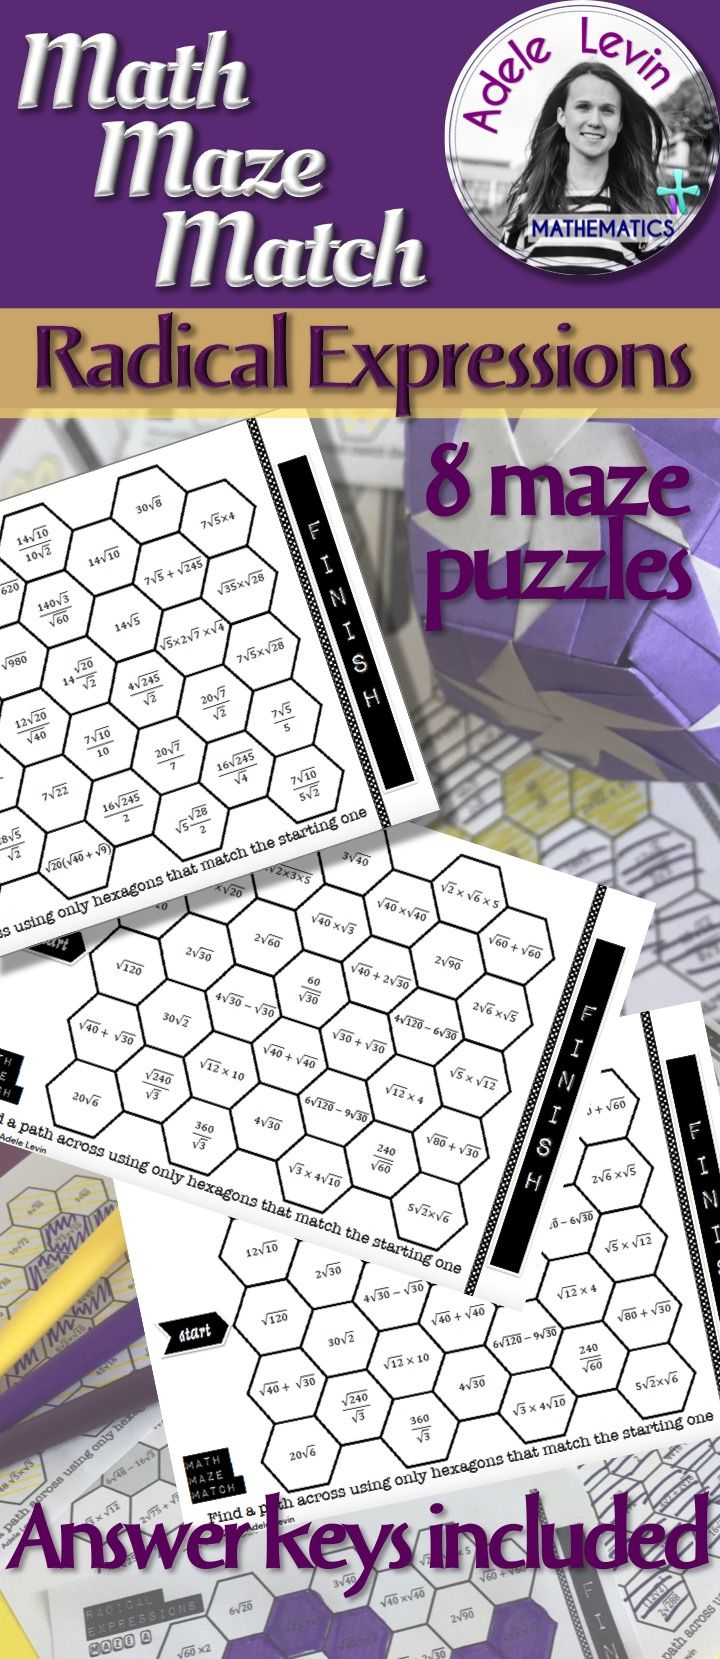 These worksheets are a fun way for students to practise simplifying and manipulating radical expressions. Students will use multiplication, division, addition and subtraction of radicals to find equivalent expressions which form a path across the maze.